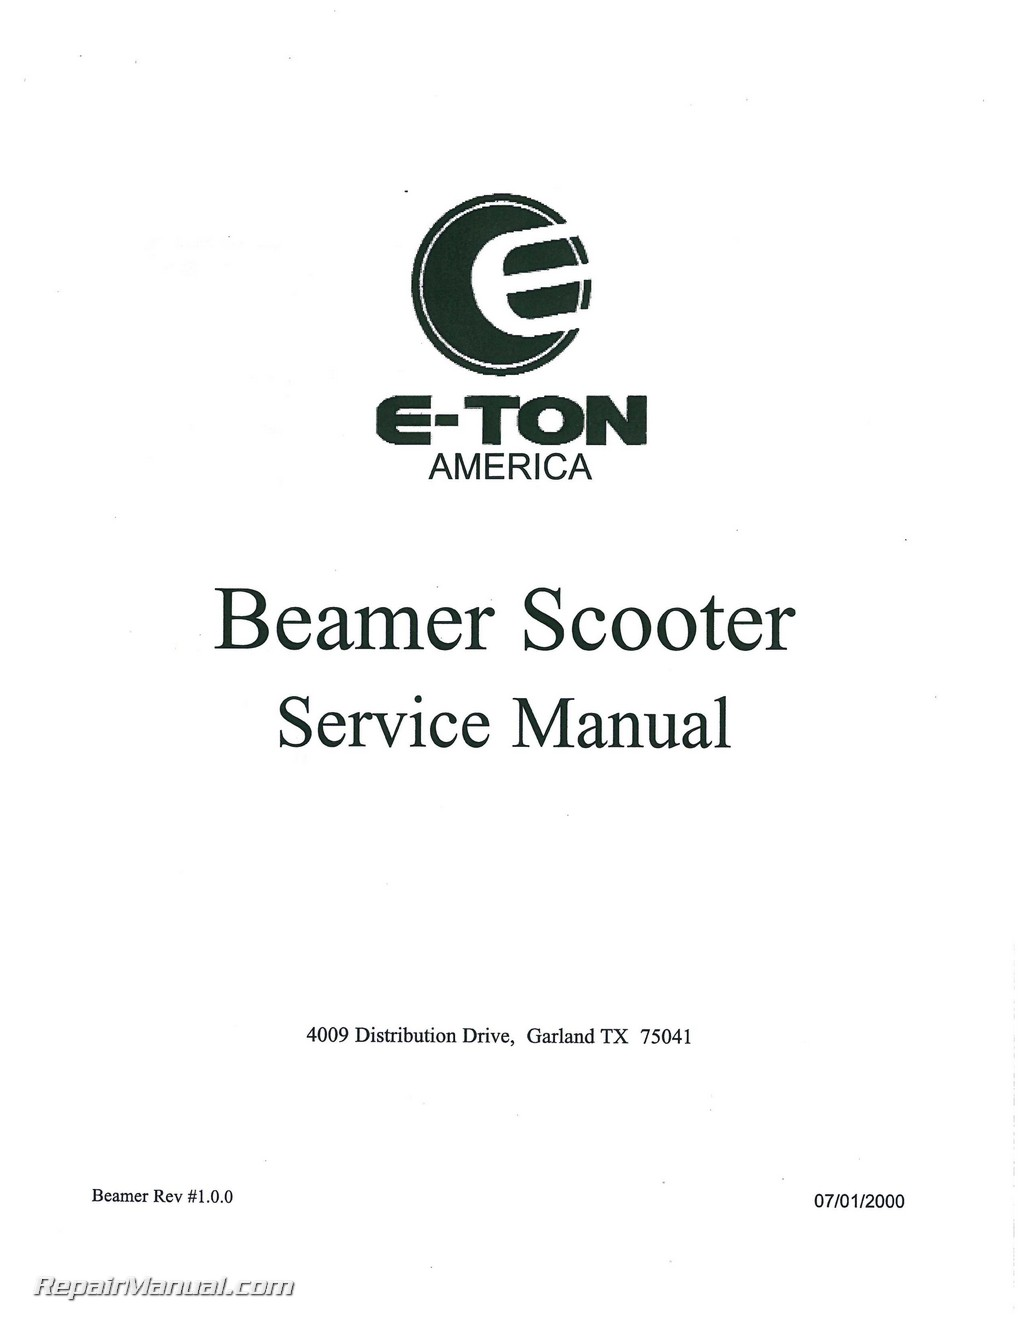 Eton Beamer Scooter Service Manual